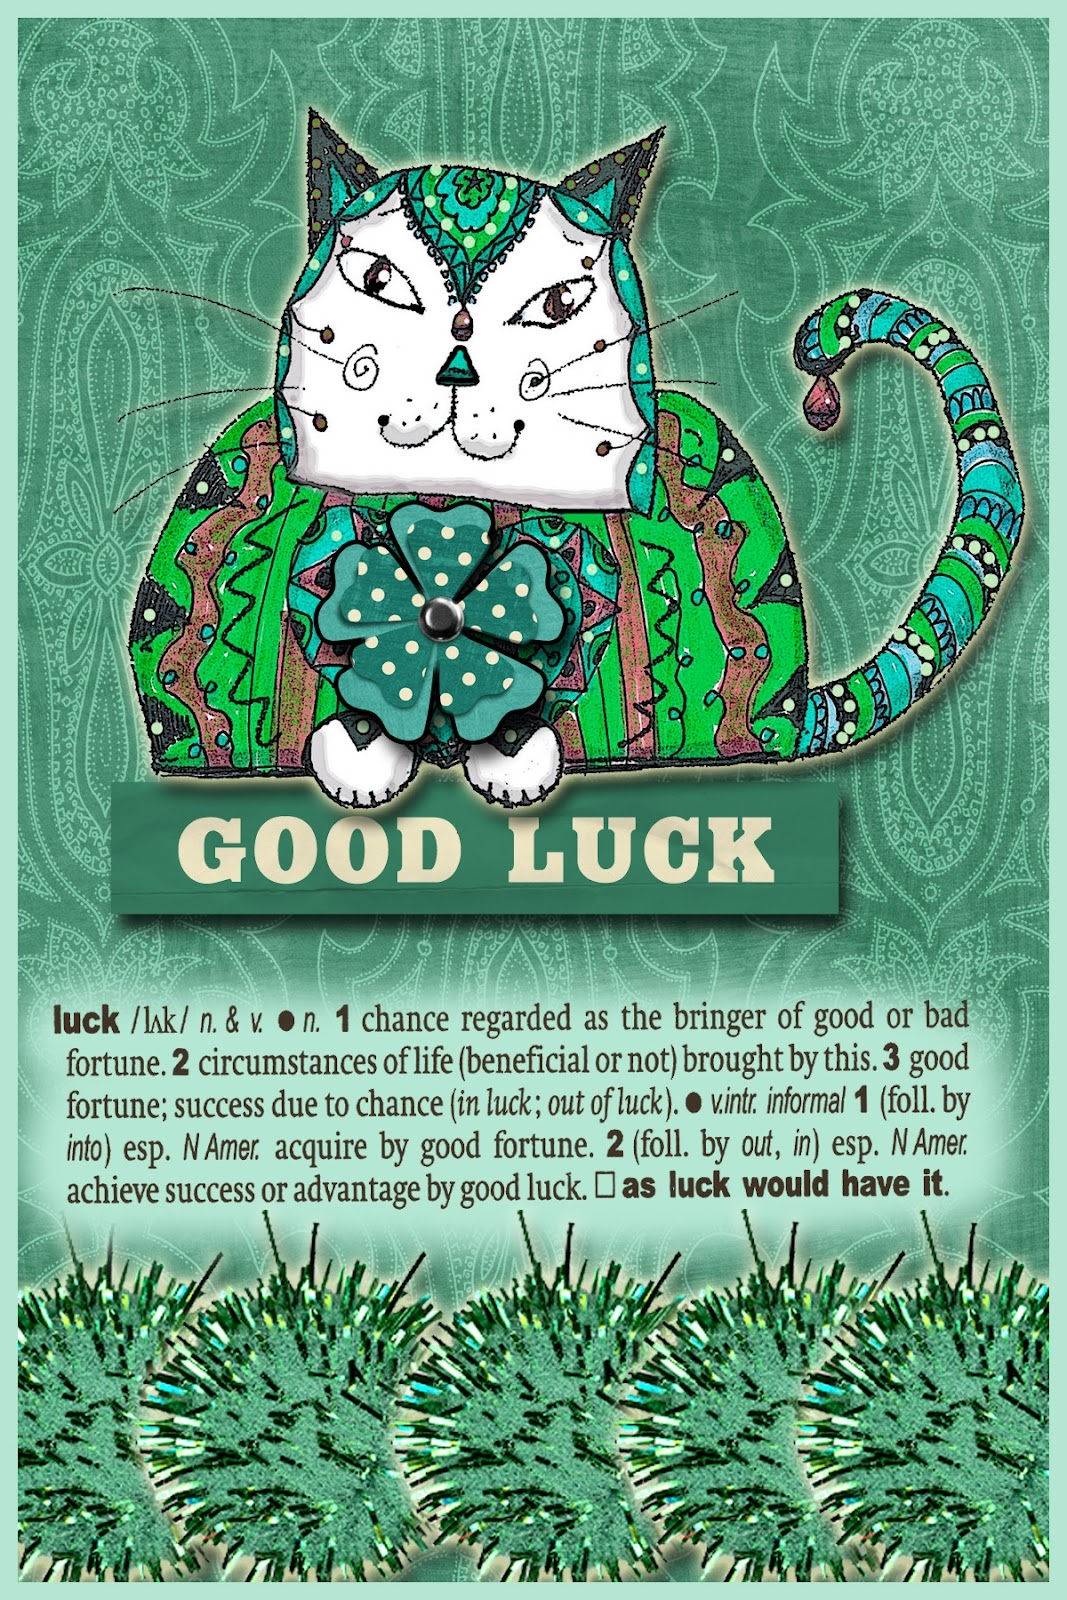 saint patrick's day coloring pages - Another green theme since today is St Patrick s Day Here s my digital collage The cat is my own design the other elements are by Miss Mint